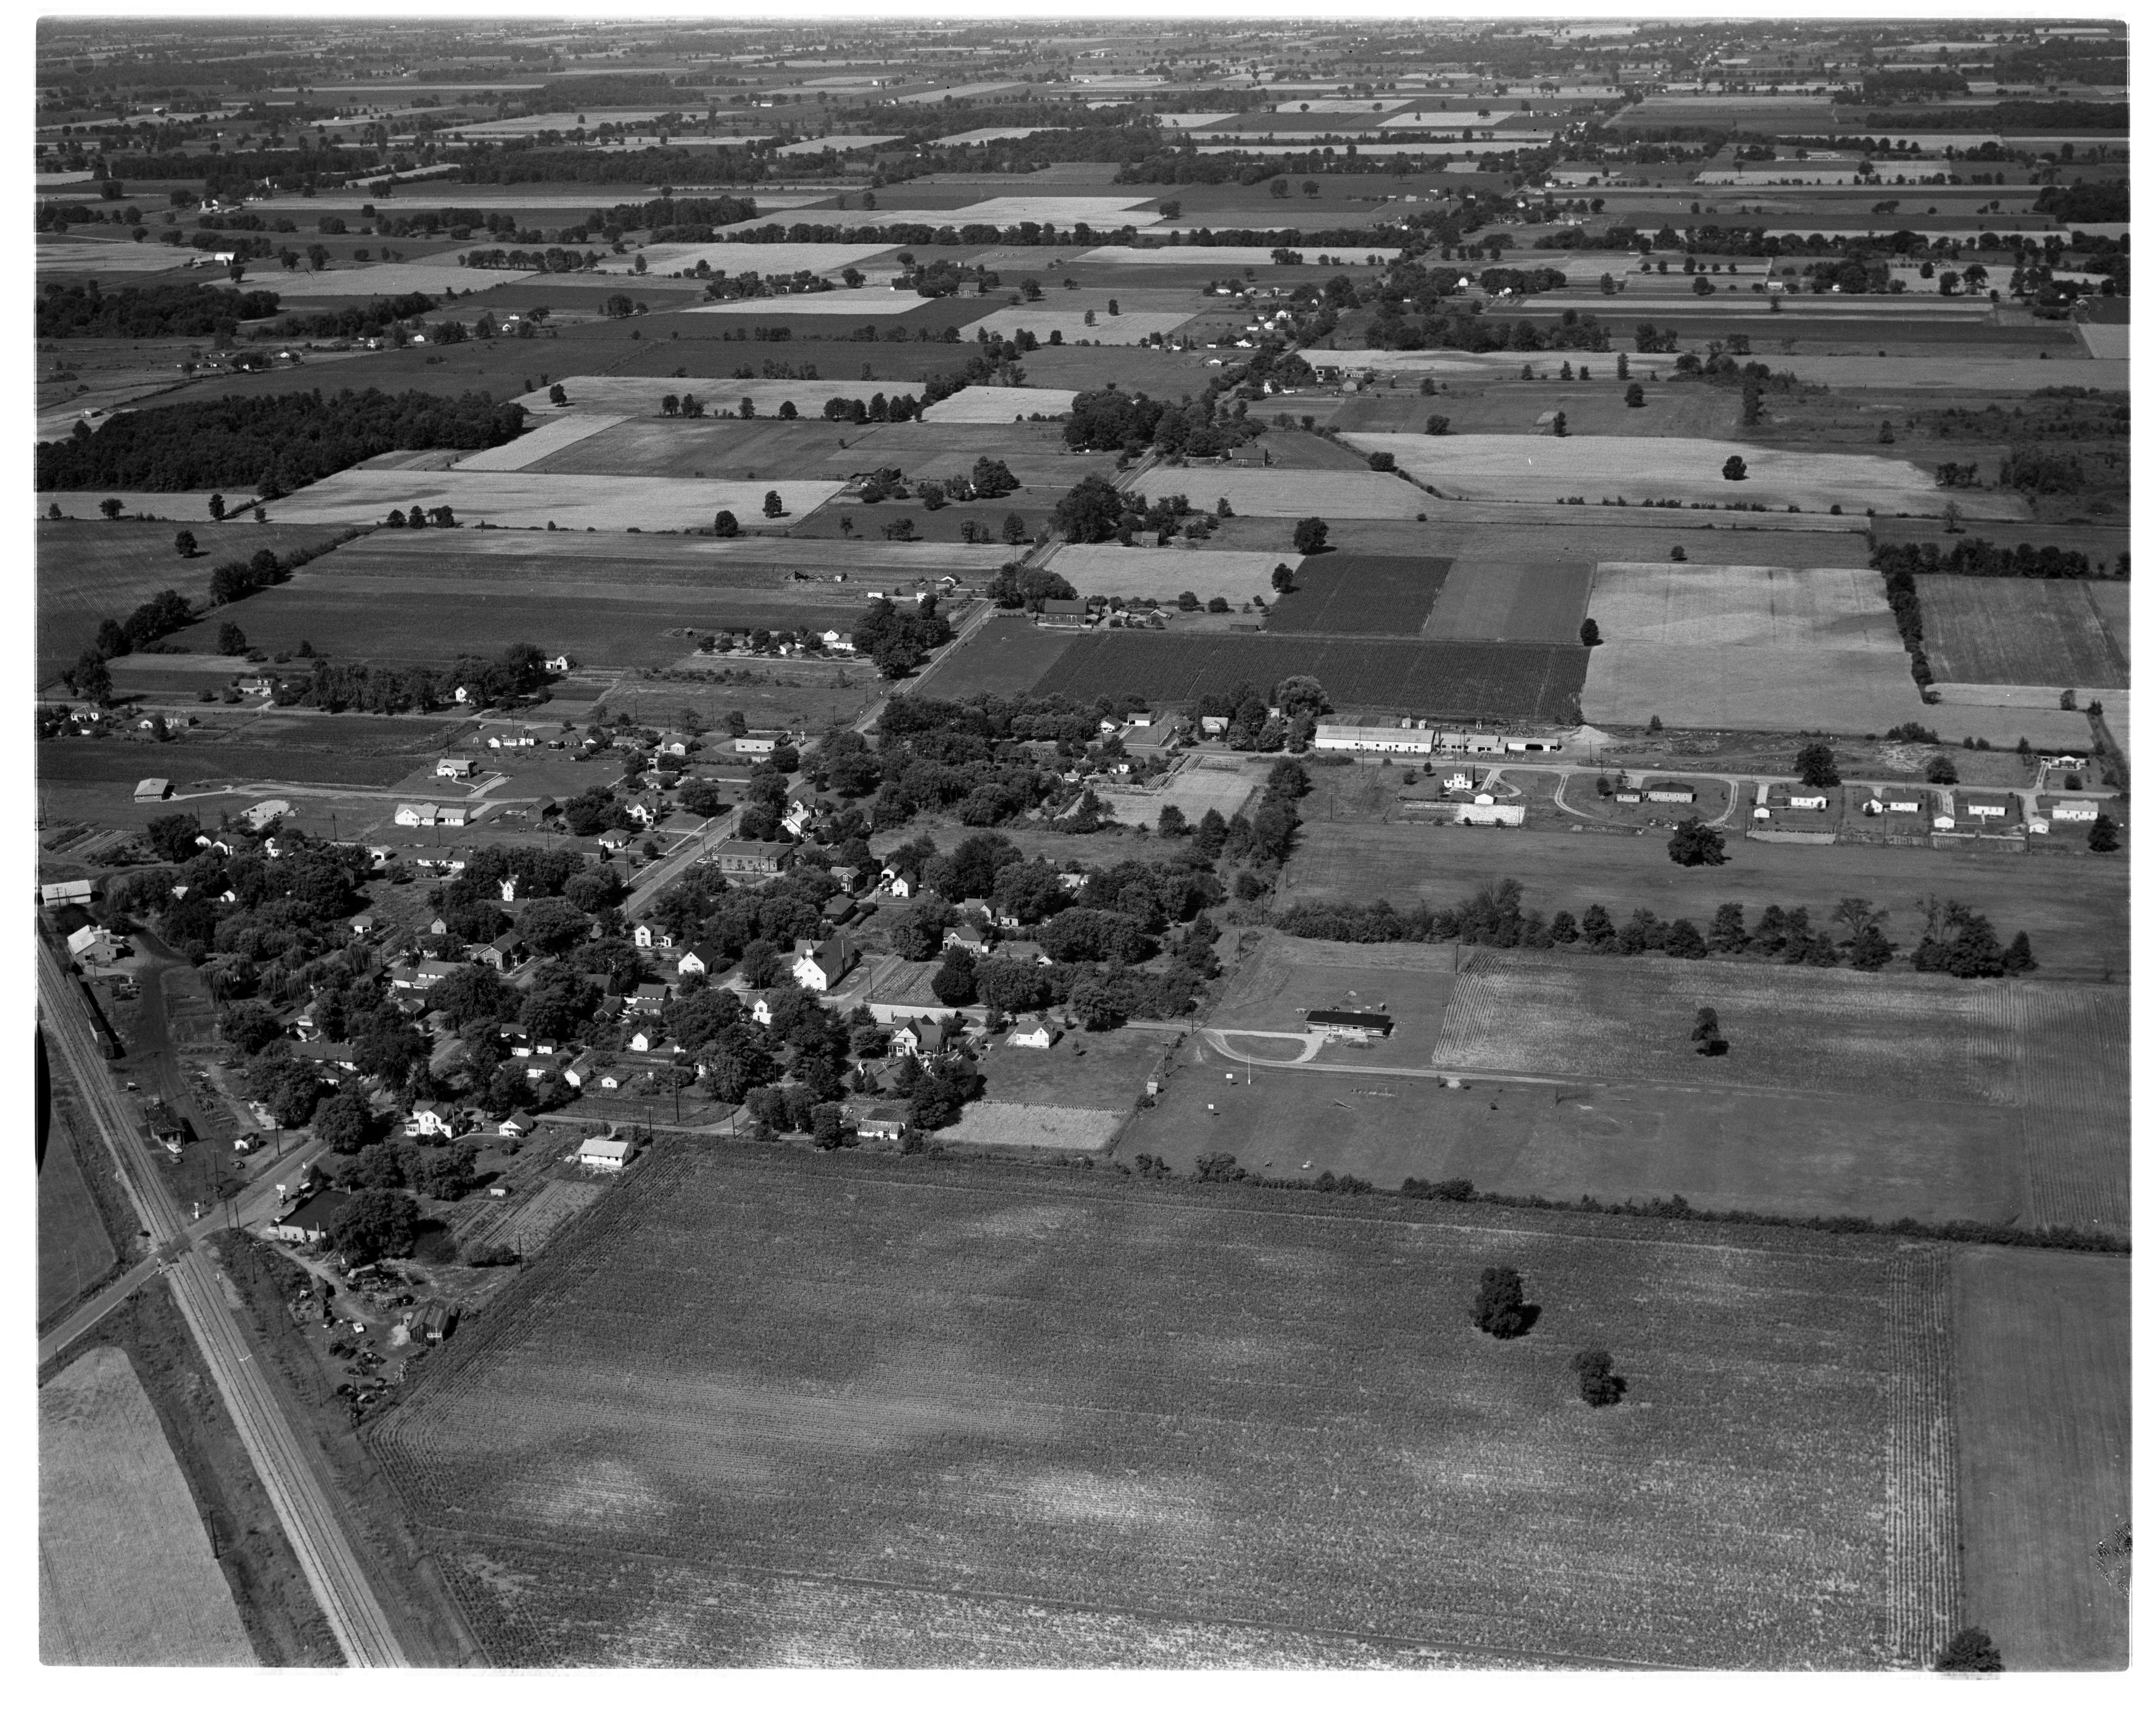 Aerial Photograph of Willis, August 1956 image